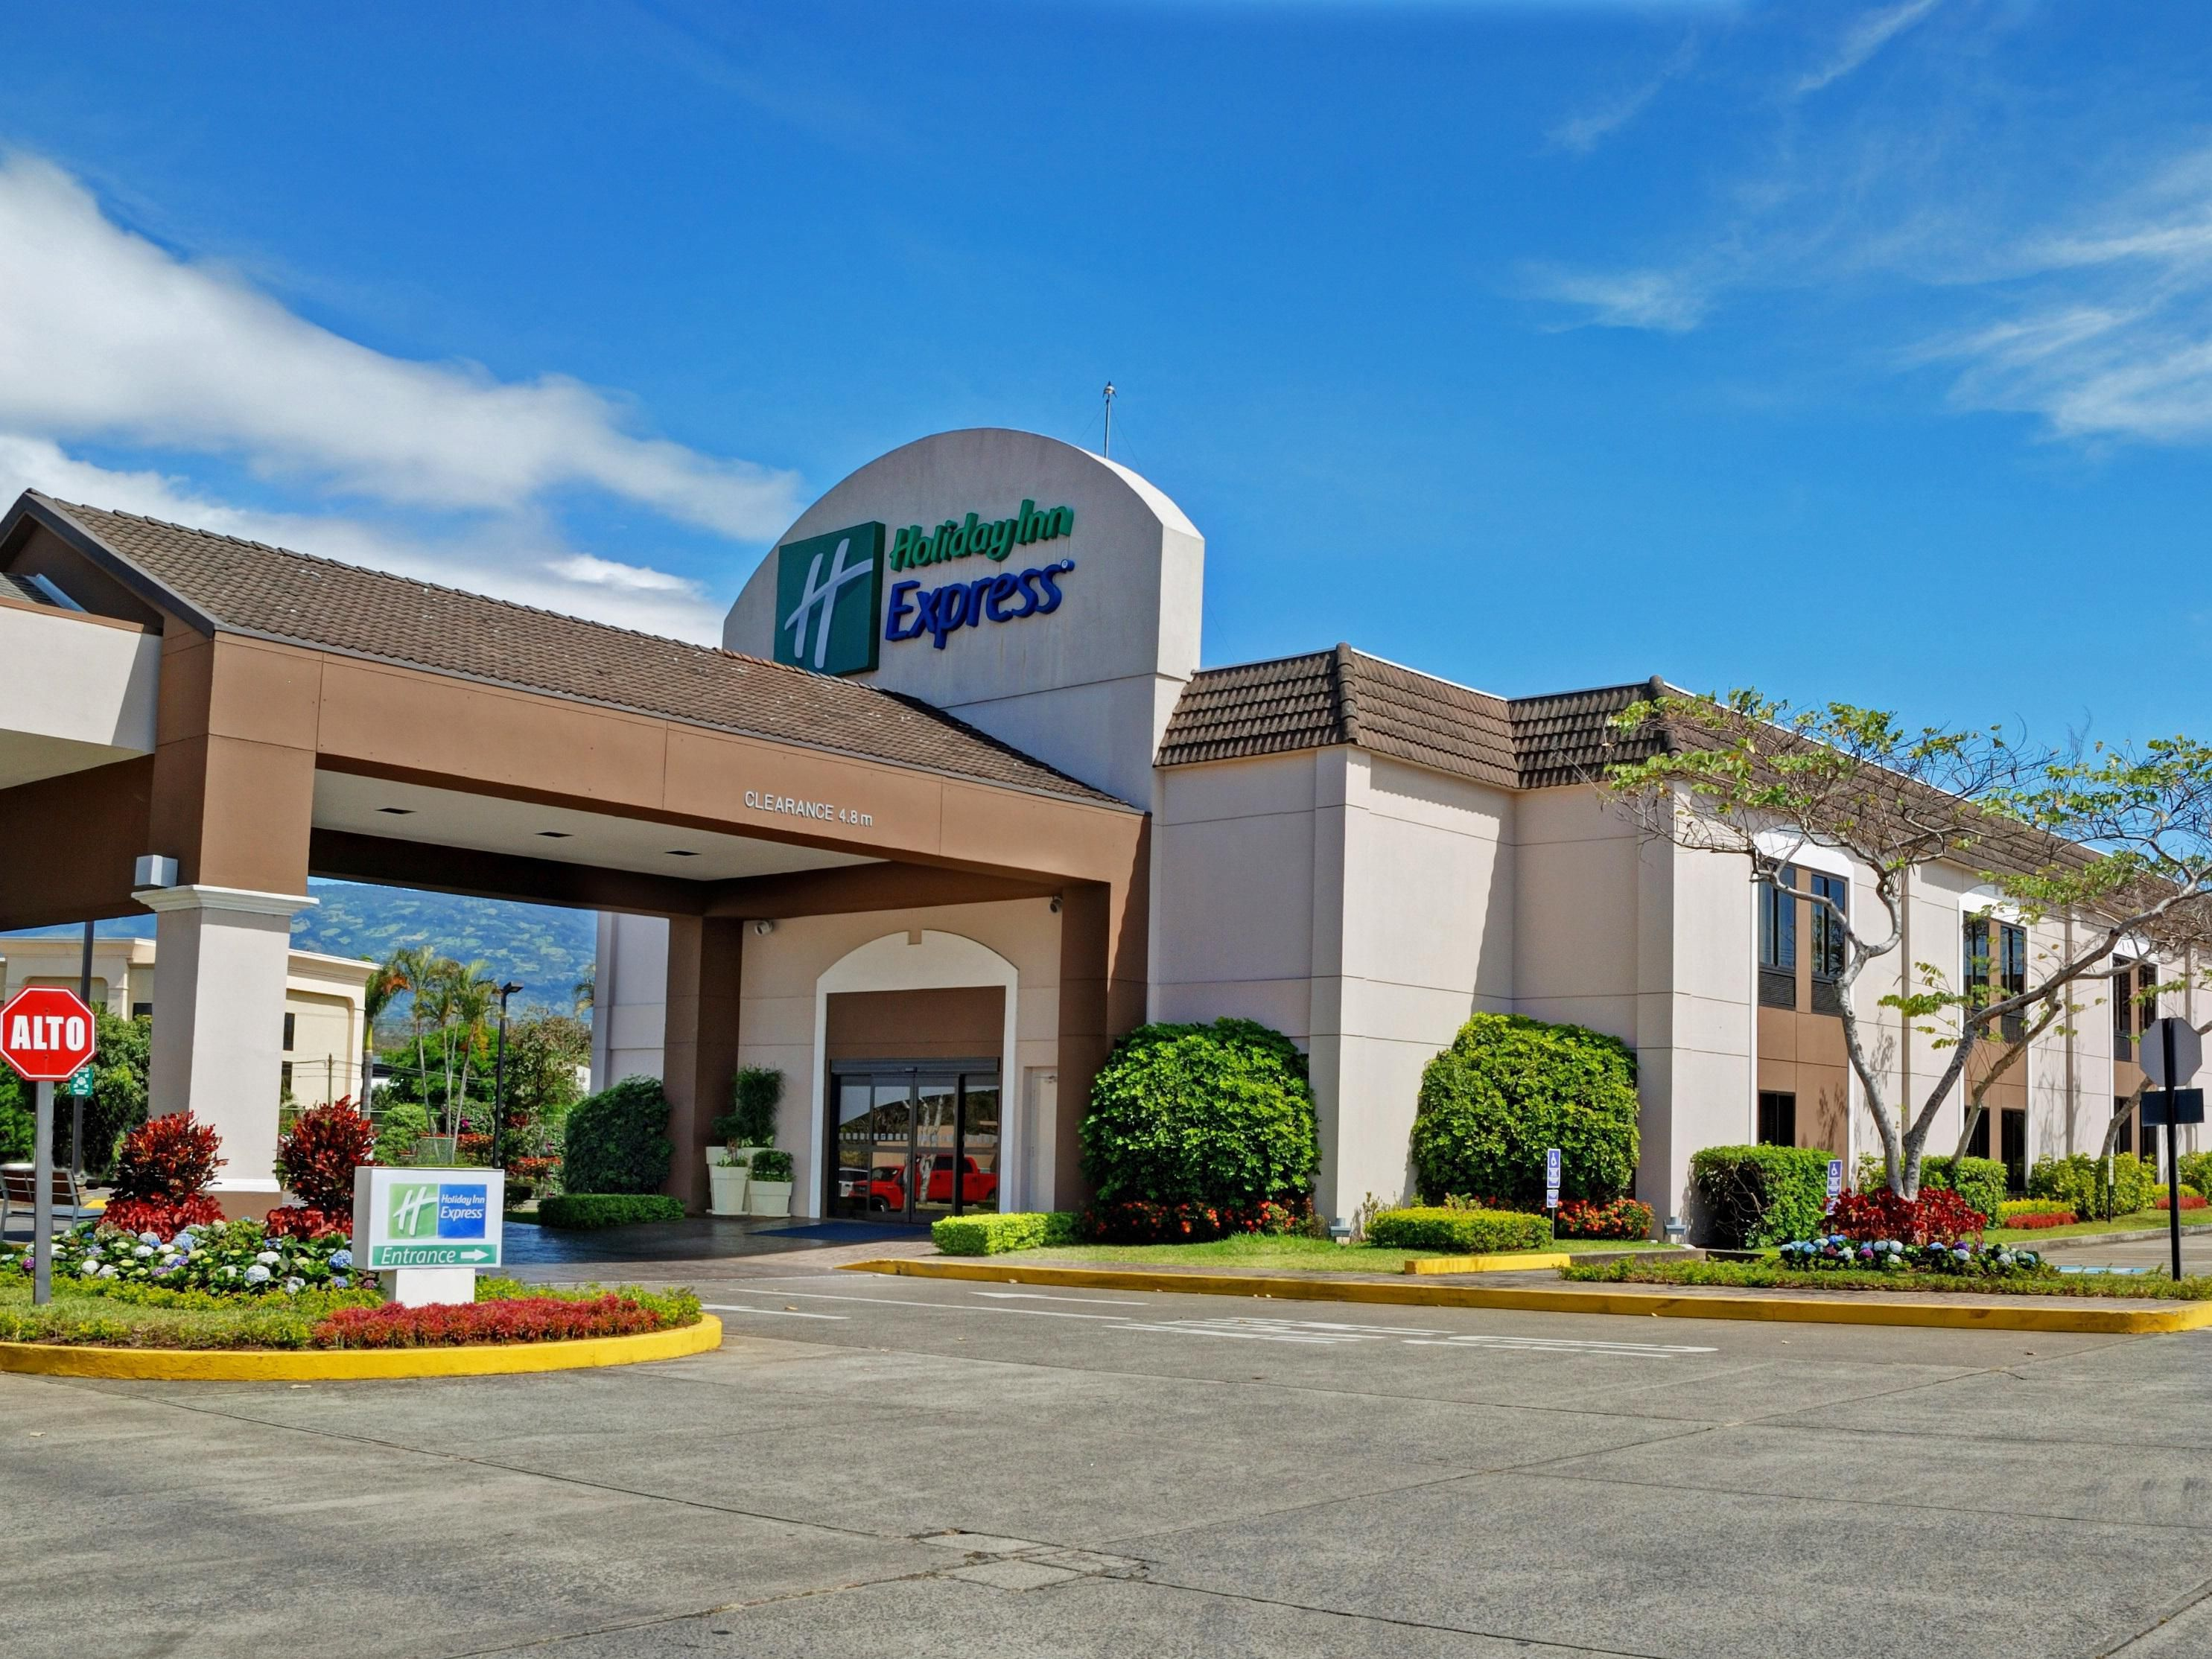 San Jose Costa Rica Airport Hotels